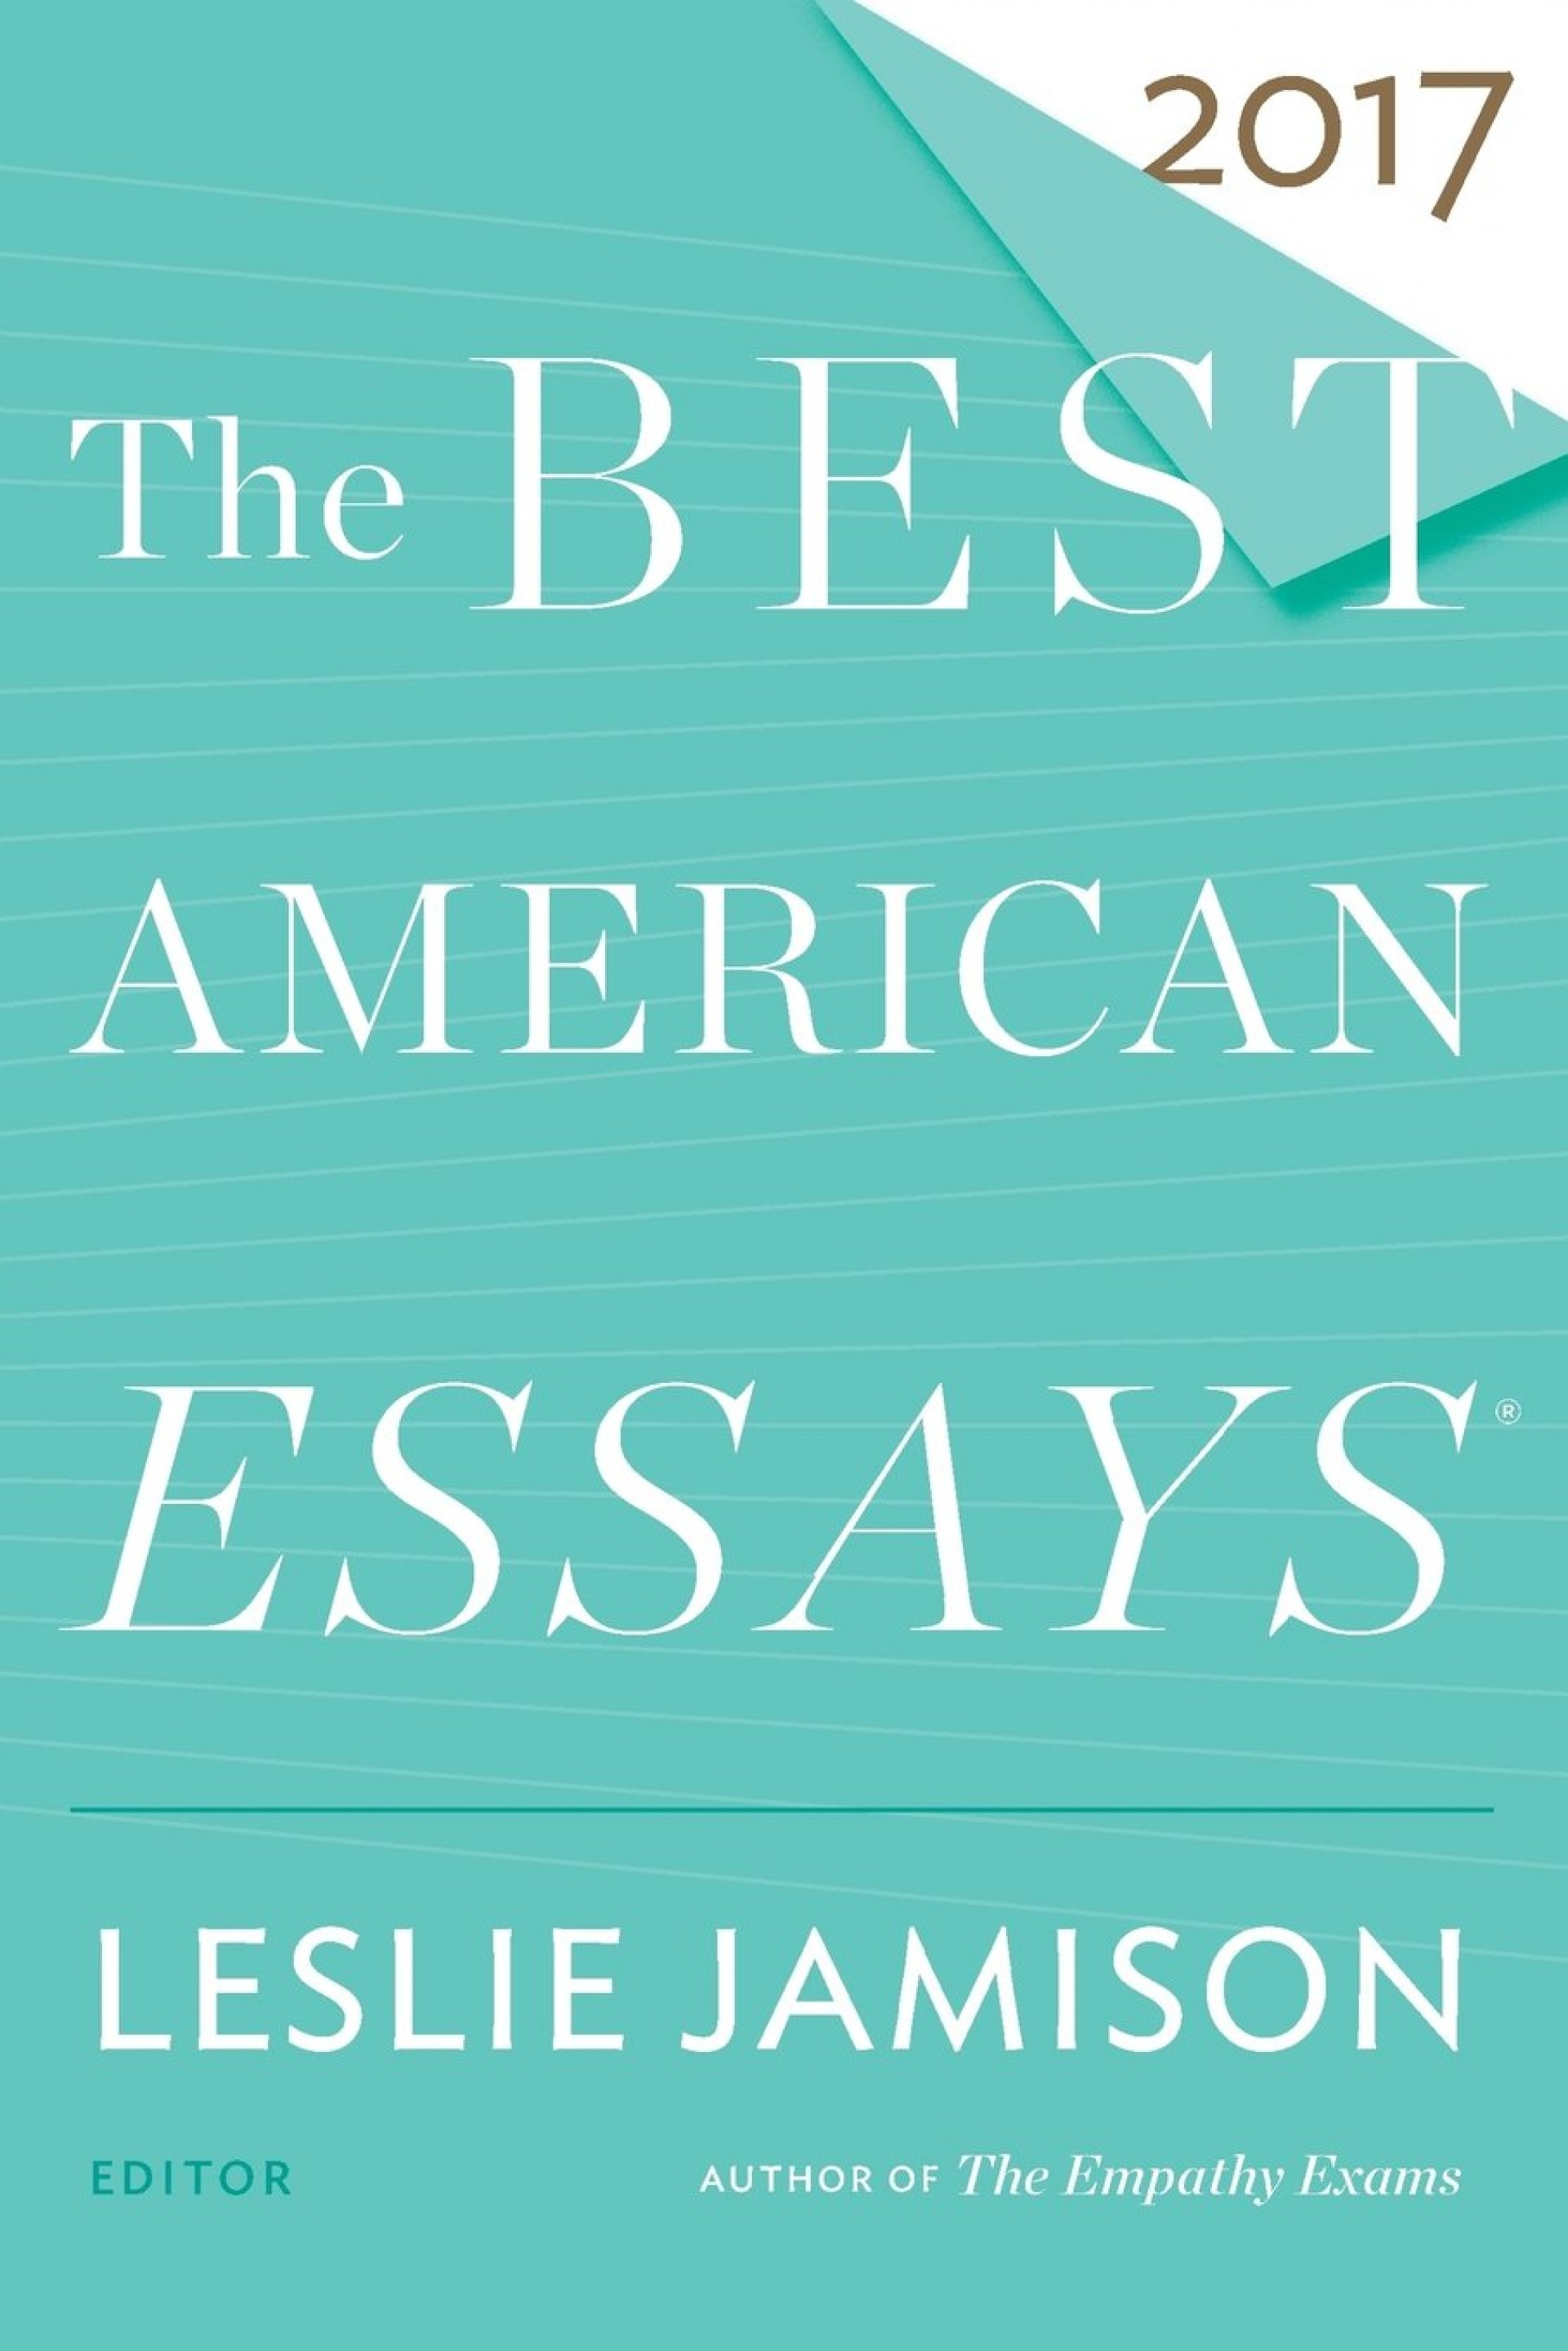 001 61tzl Nruvl Essay Example The Best American Wonderful Essays Of Century Table Contents 2013 Pdf Download 1920